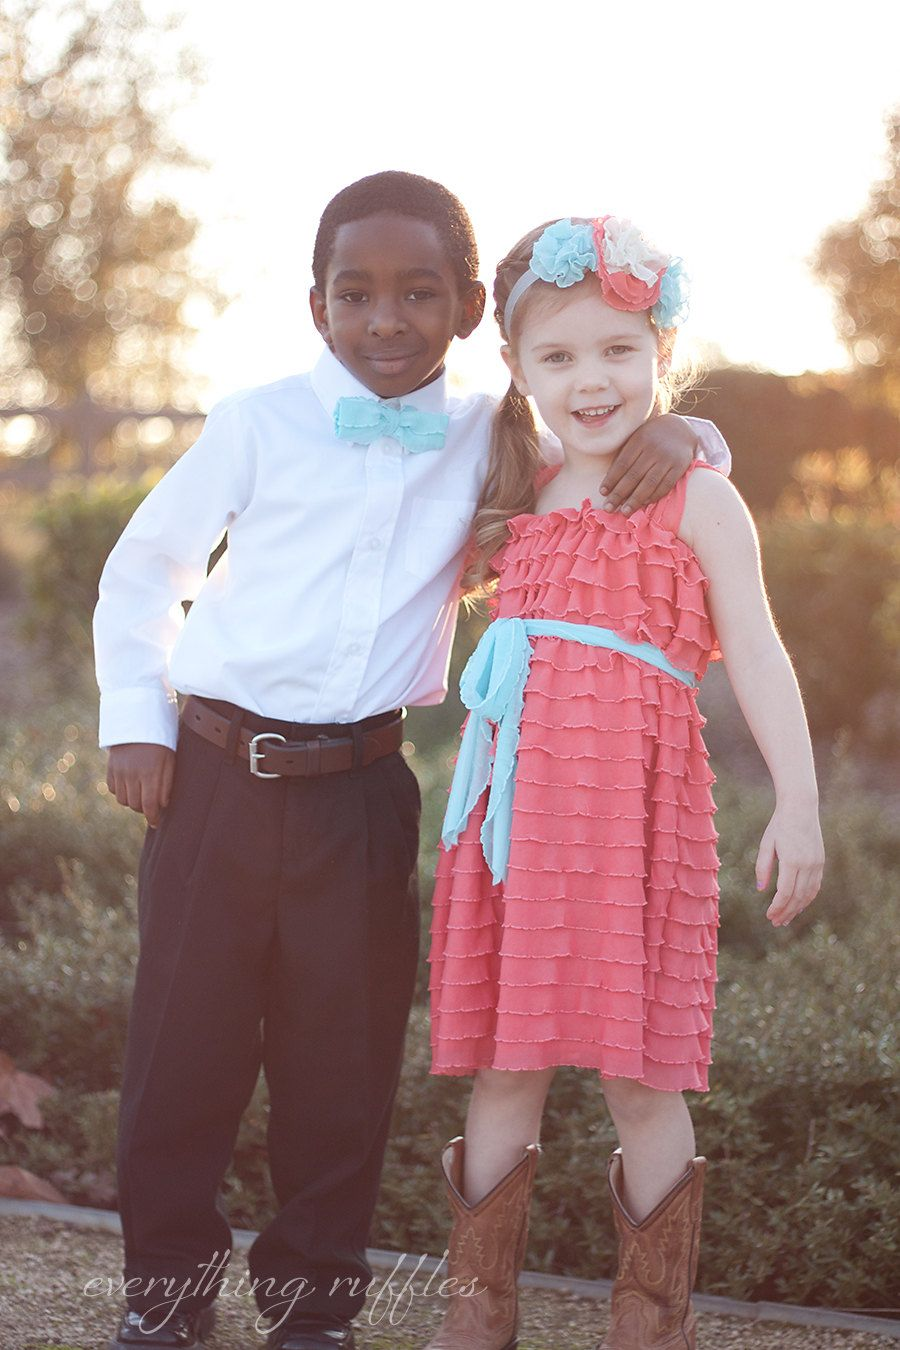 Girl and boy | Adorable Babies :3 | Pinterest